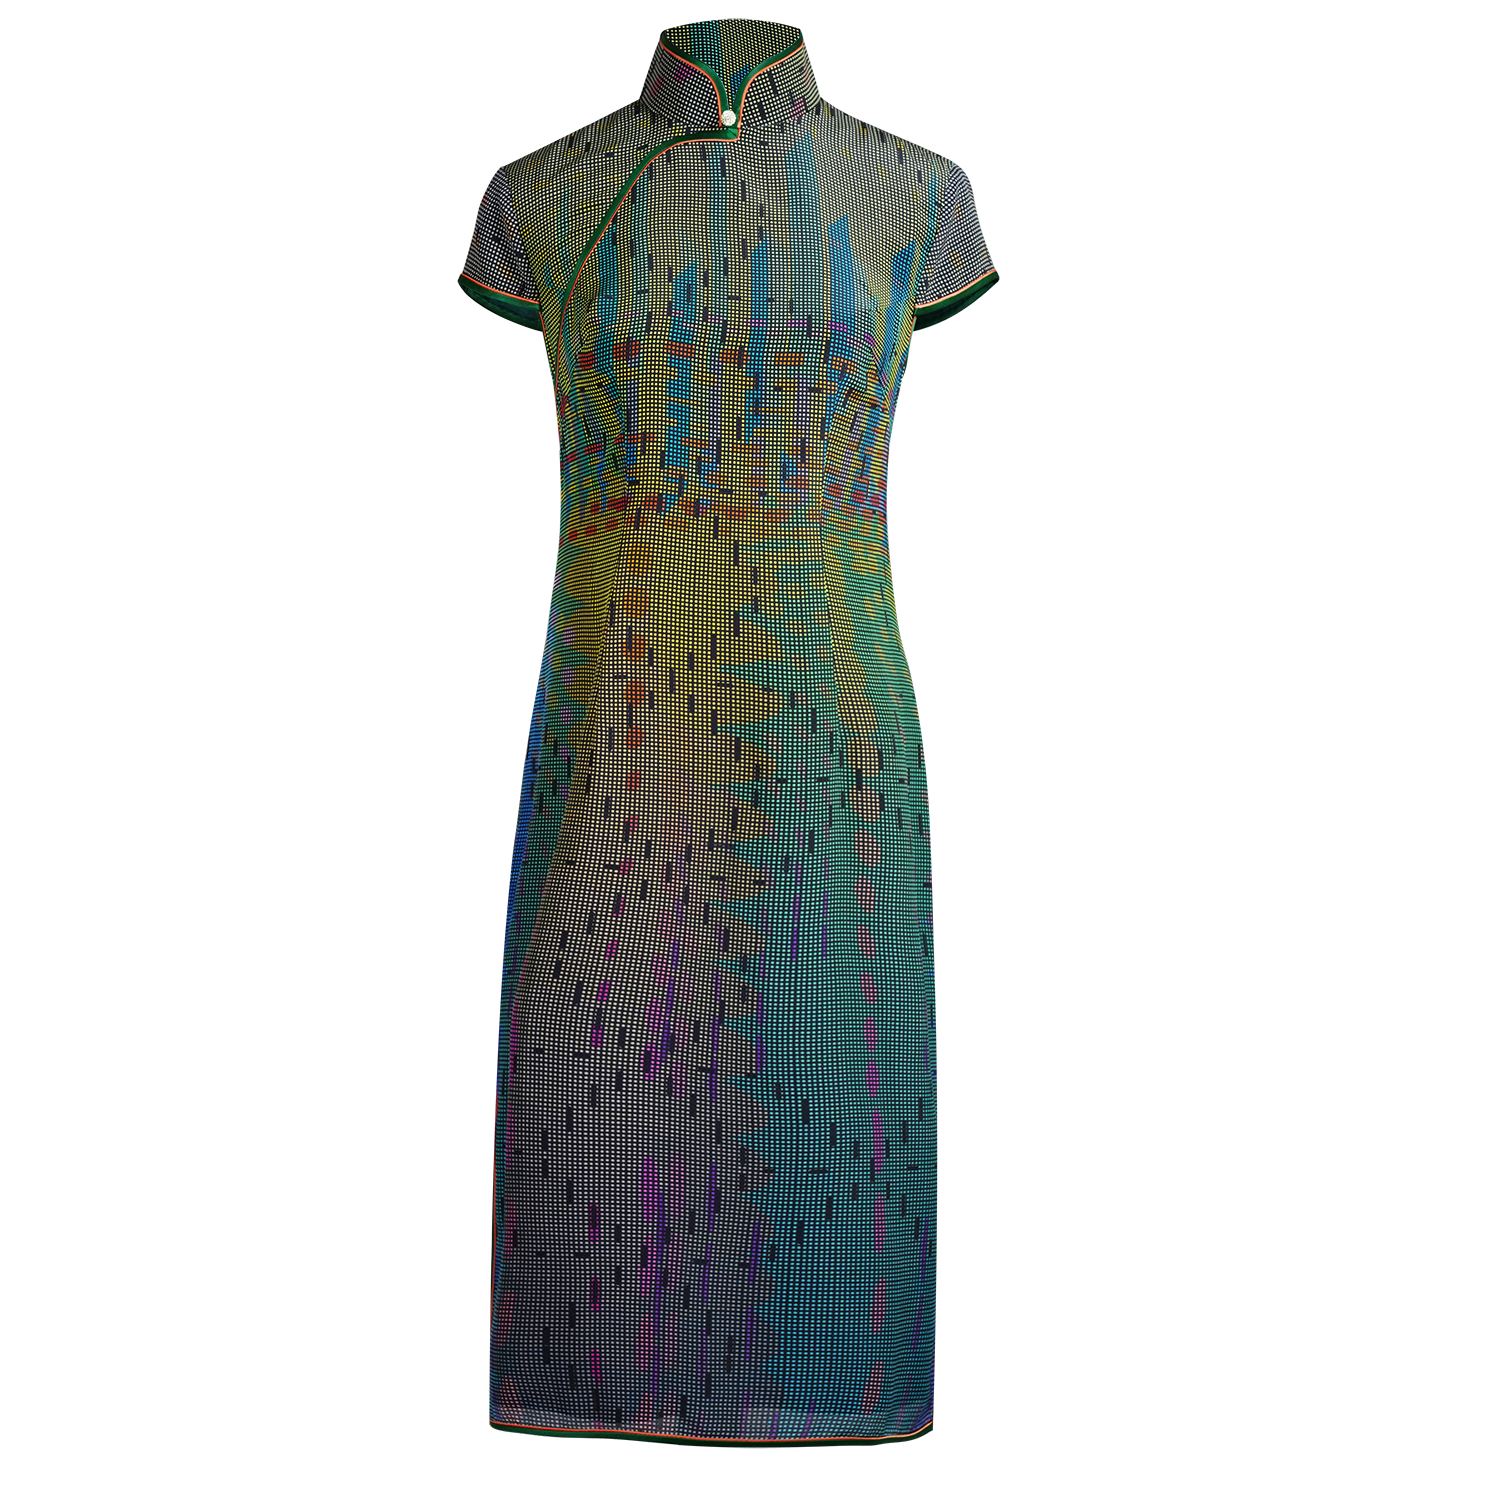 【SUNRISE SUNSET】100% Silk Cheongsam (Cap Sleeve / Regular Fit) - THE SPARKLE COLLECTION by GERMAN POOL